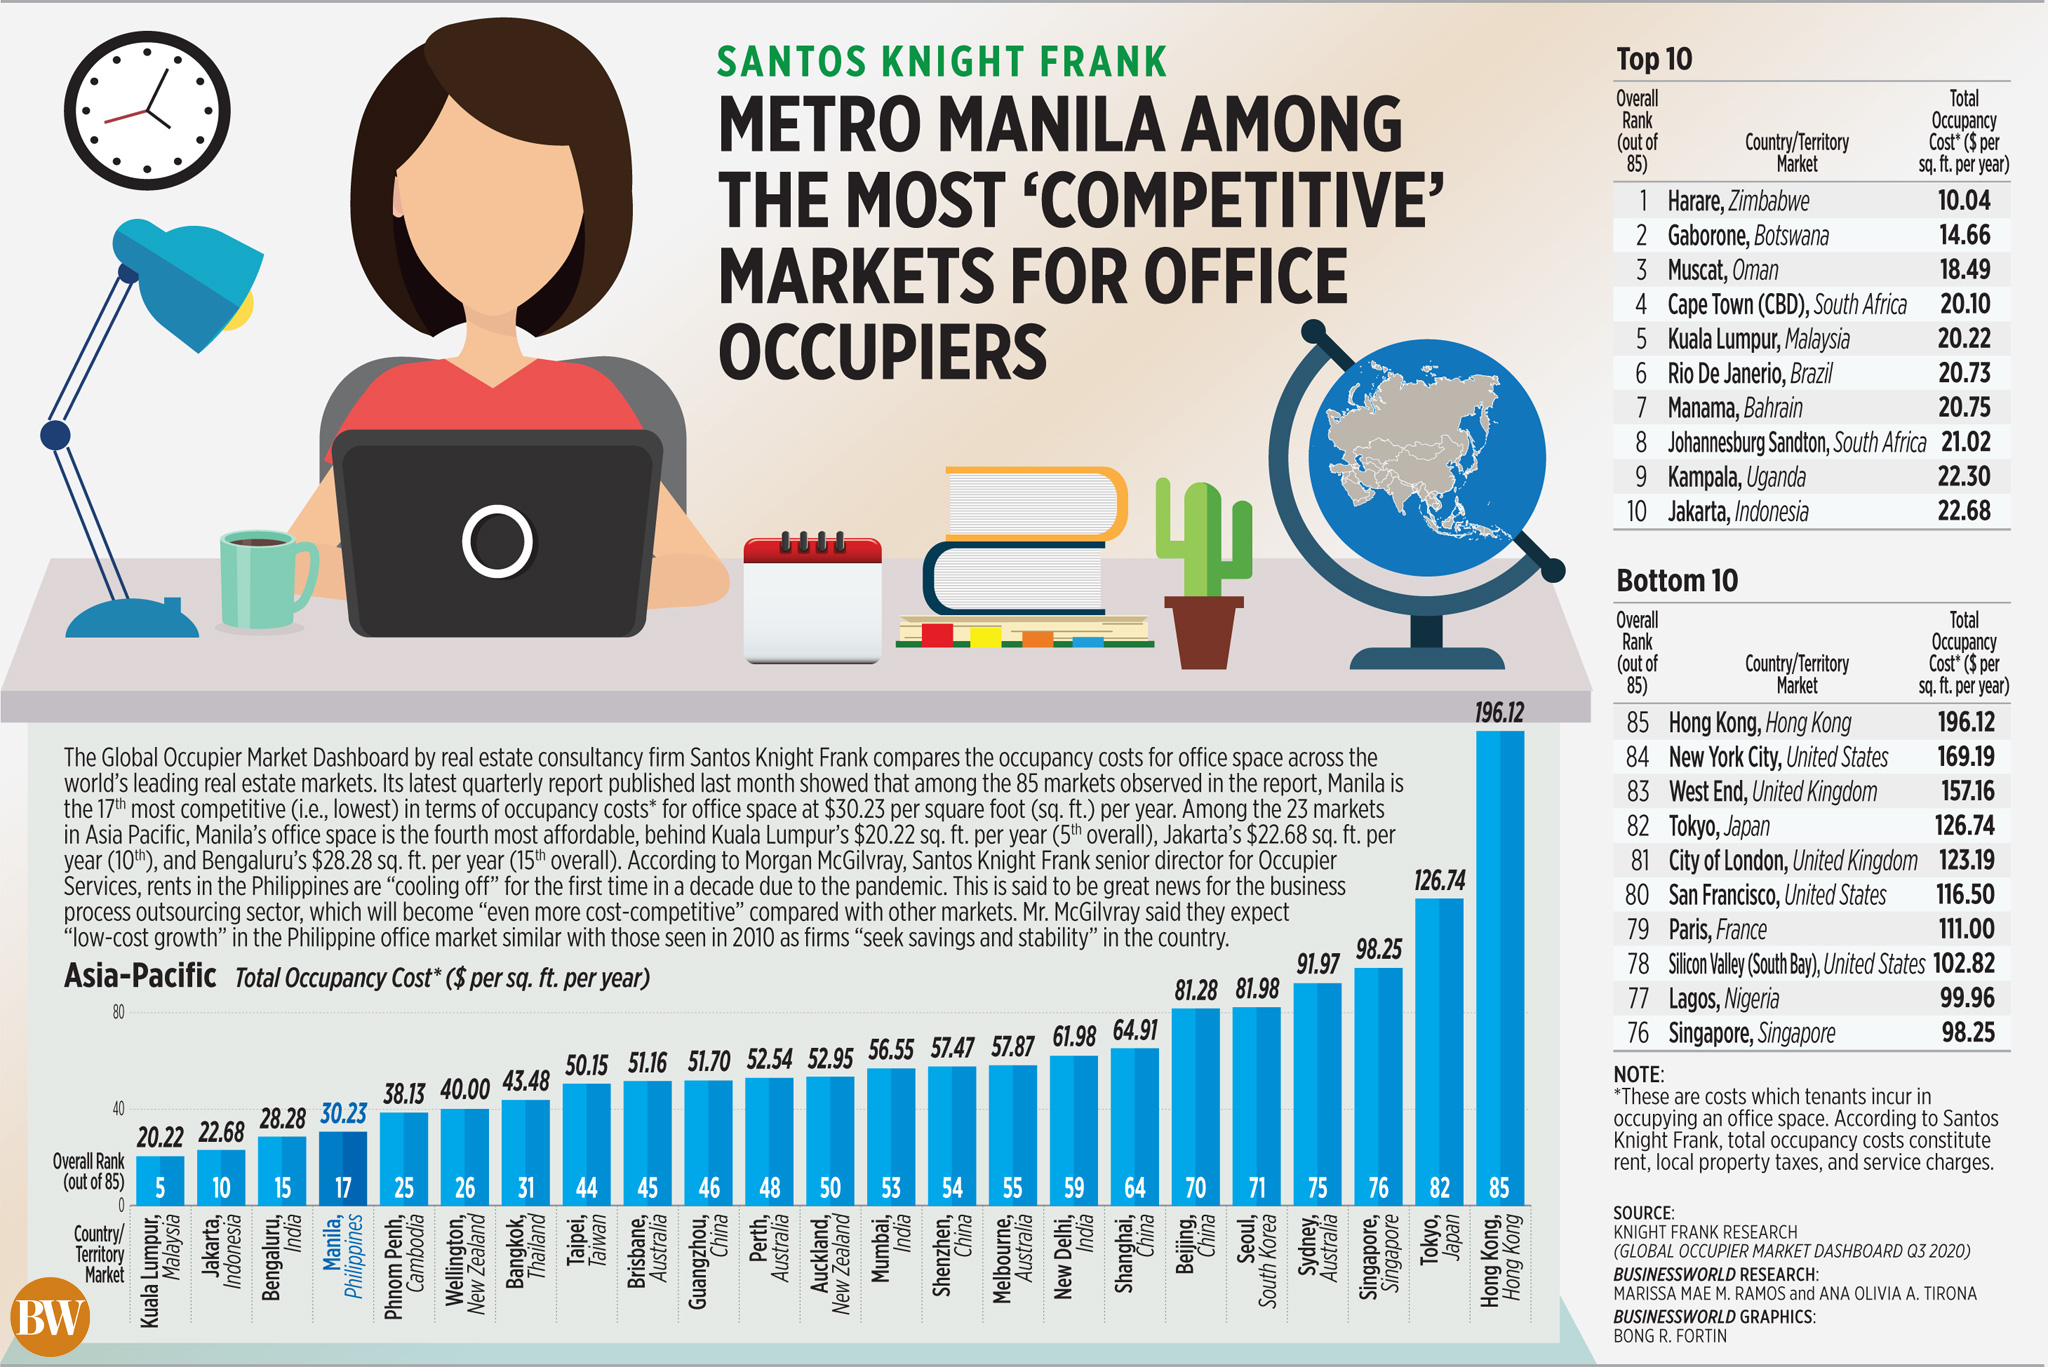 Metro Manila among the most 'competitive' markets for office occupiers